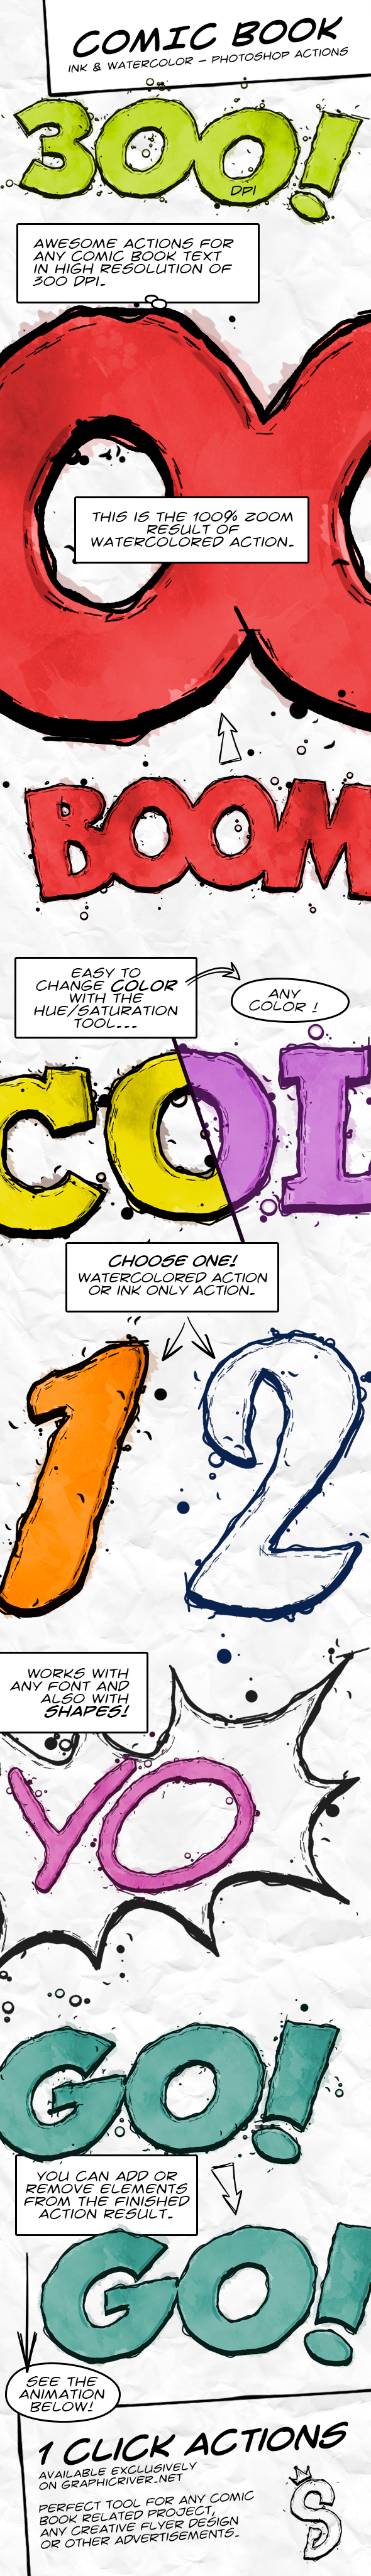 Comic Book Ink Actions - 300 DPI - Text Effects Actions